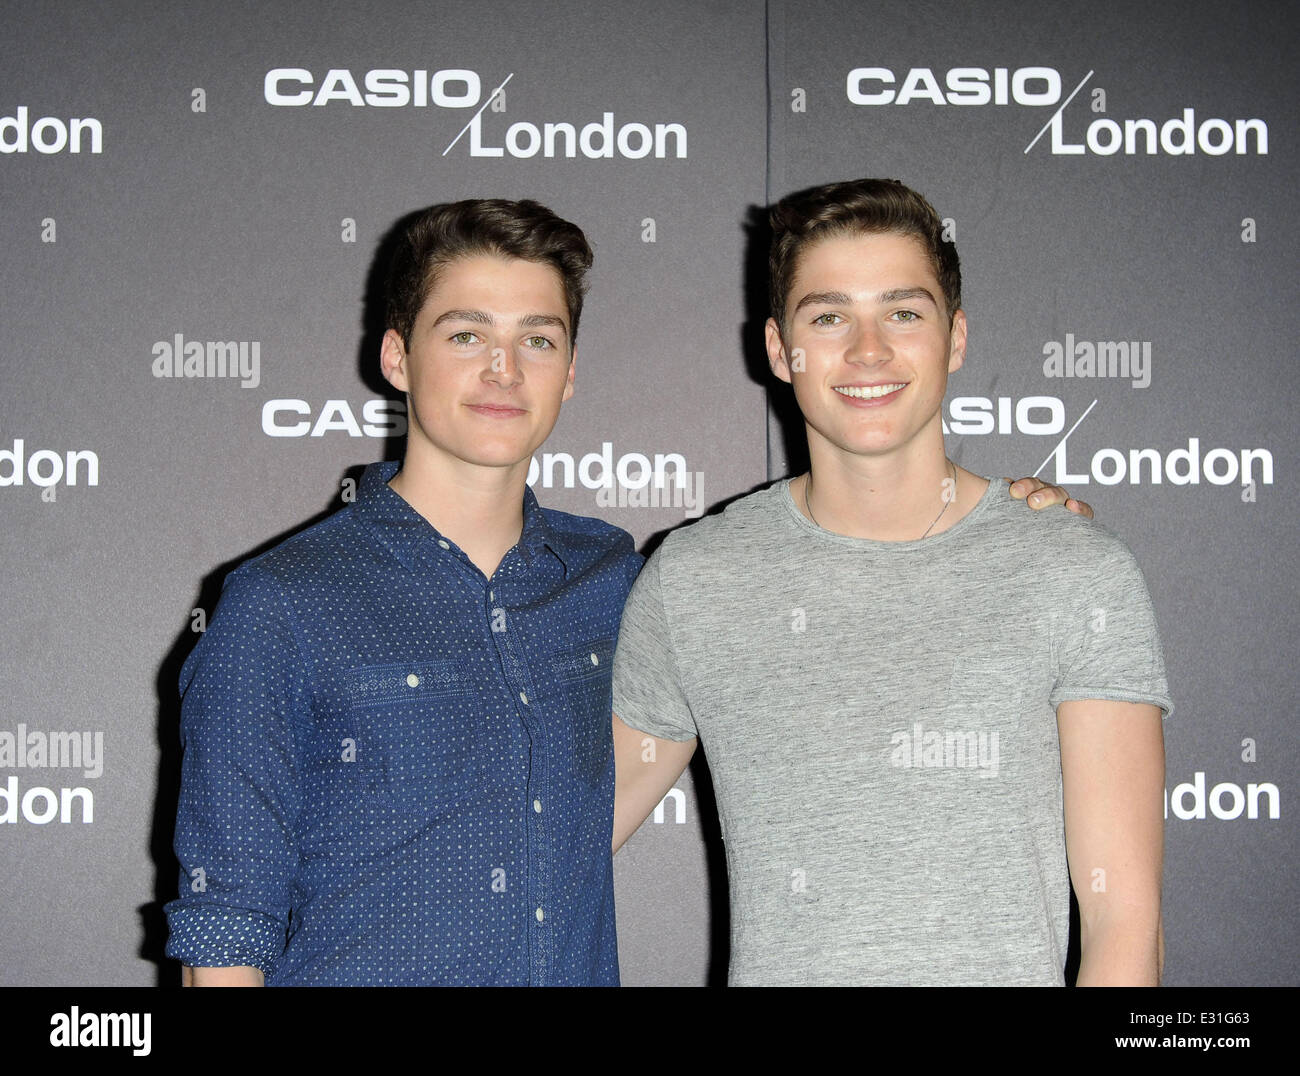 Casio London Store 1st Birthday Party Held At The Covent Garden Featuring Jack HarriesFinn Harries Where United Kingdom When 08 May 2013